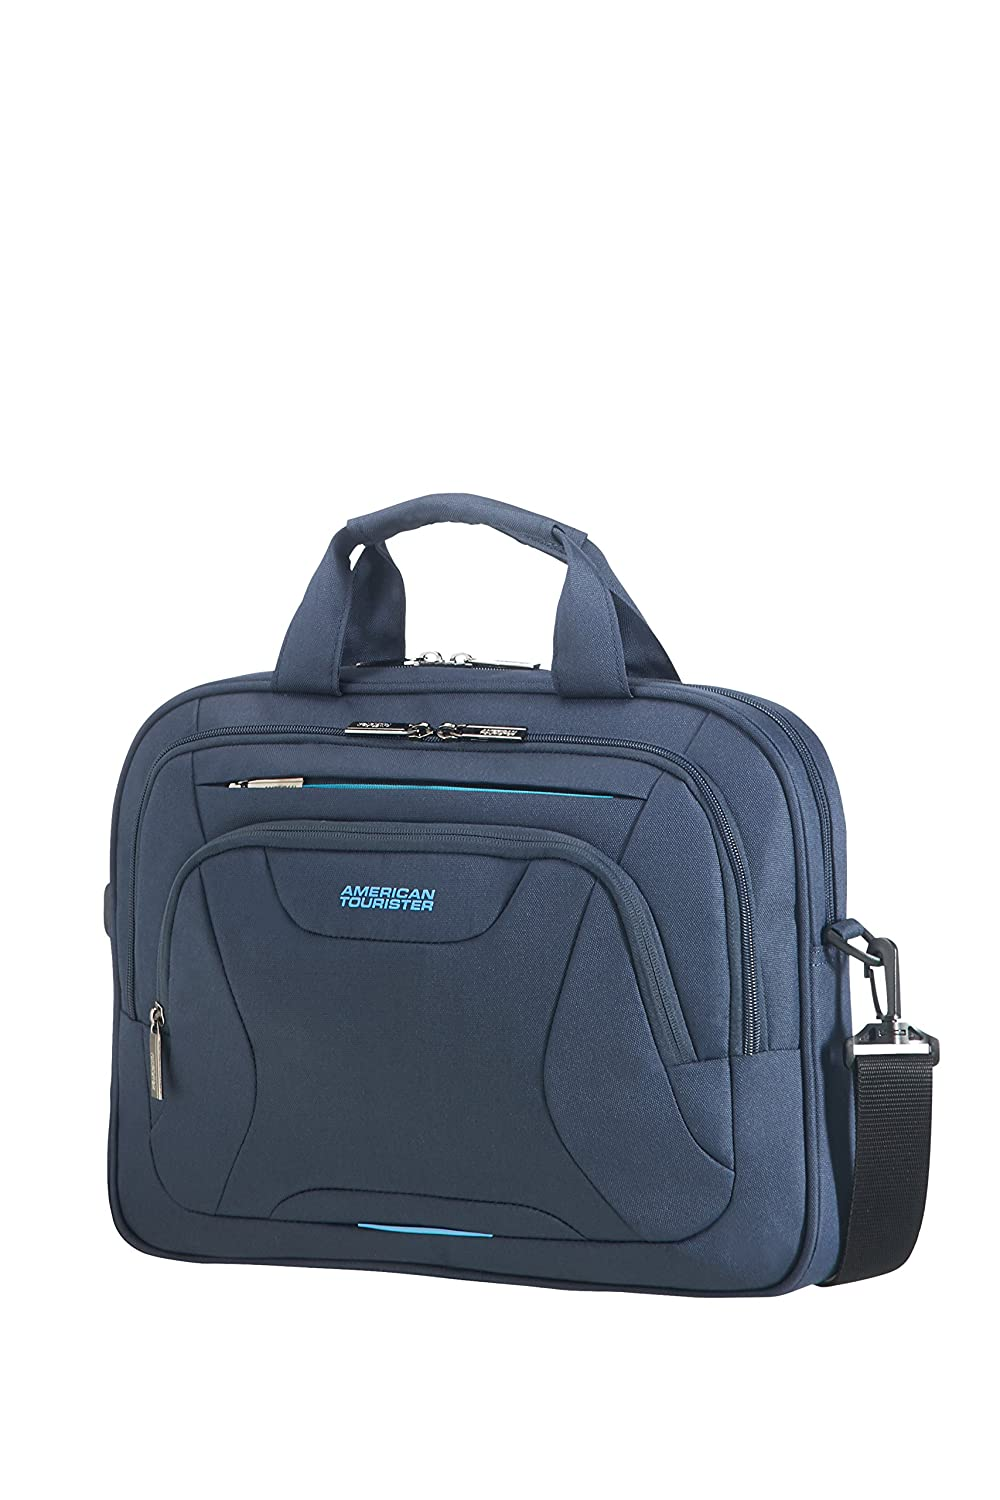 AMERICAN TOURISTER at Work Laptoptasche 13.3-14.1, Aktentasche, 39 cm, 10 L, Midnight Navy 88531/1552